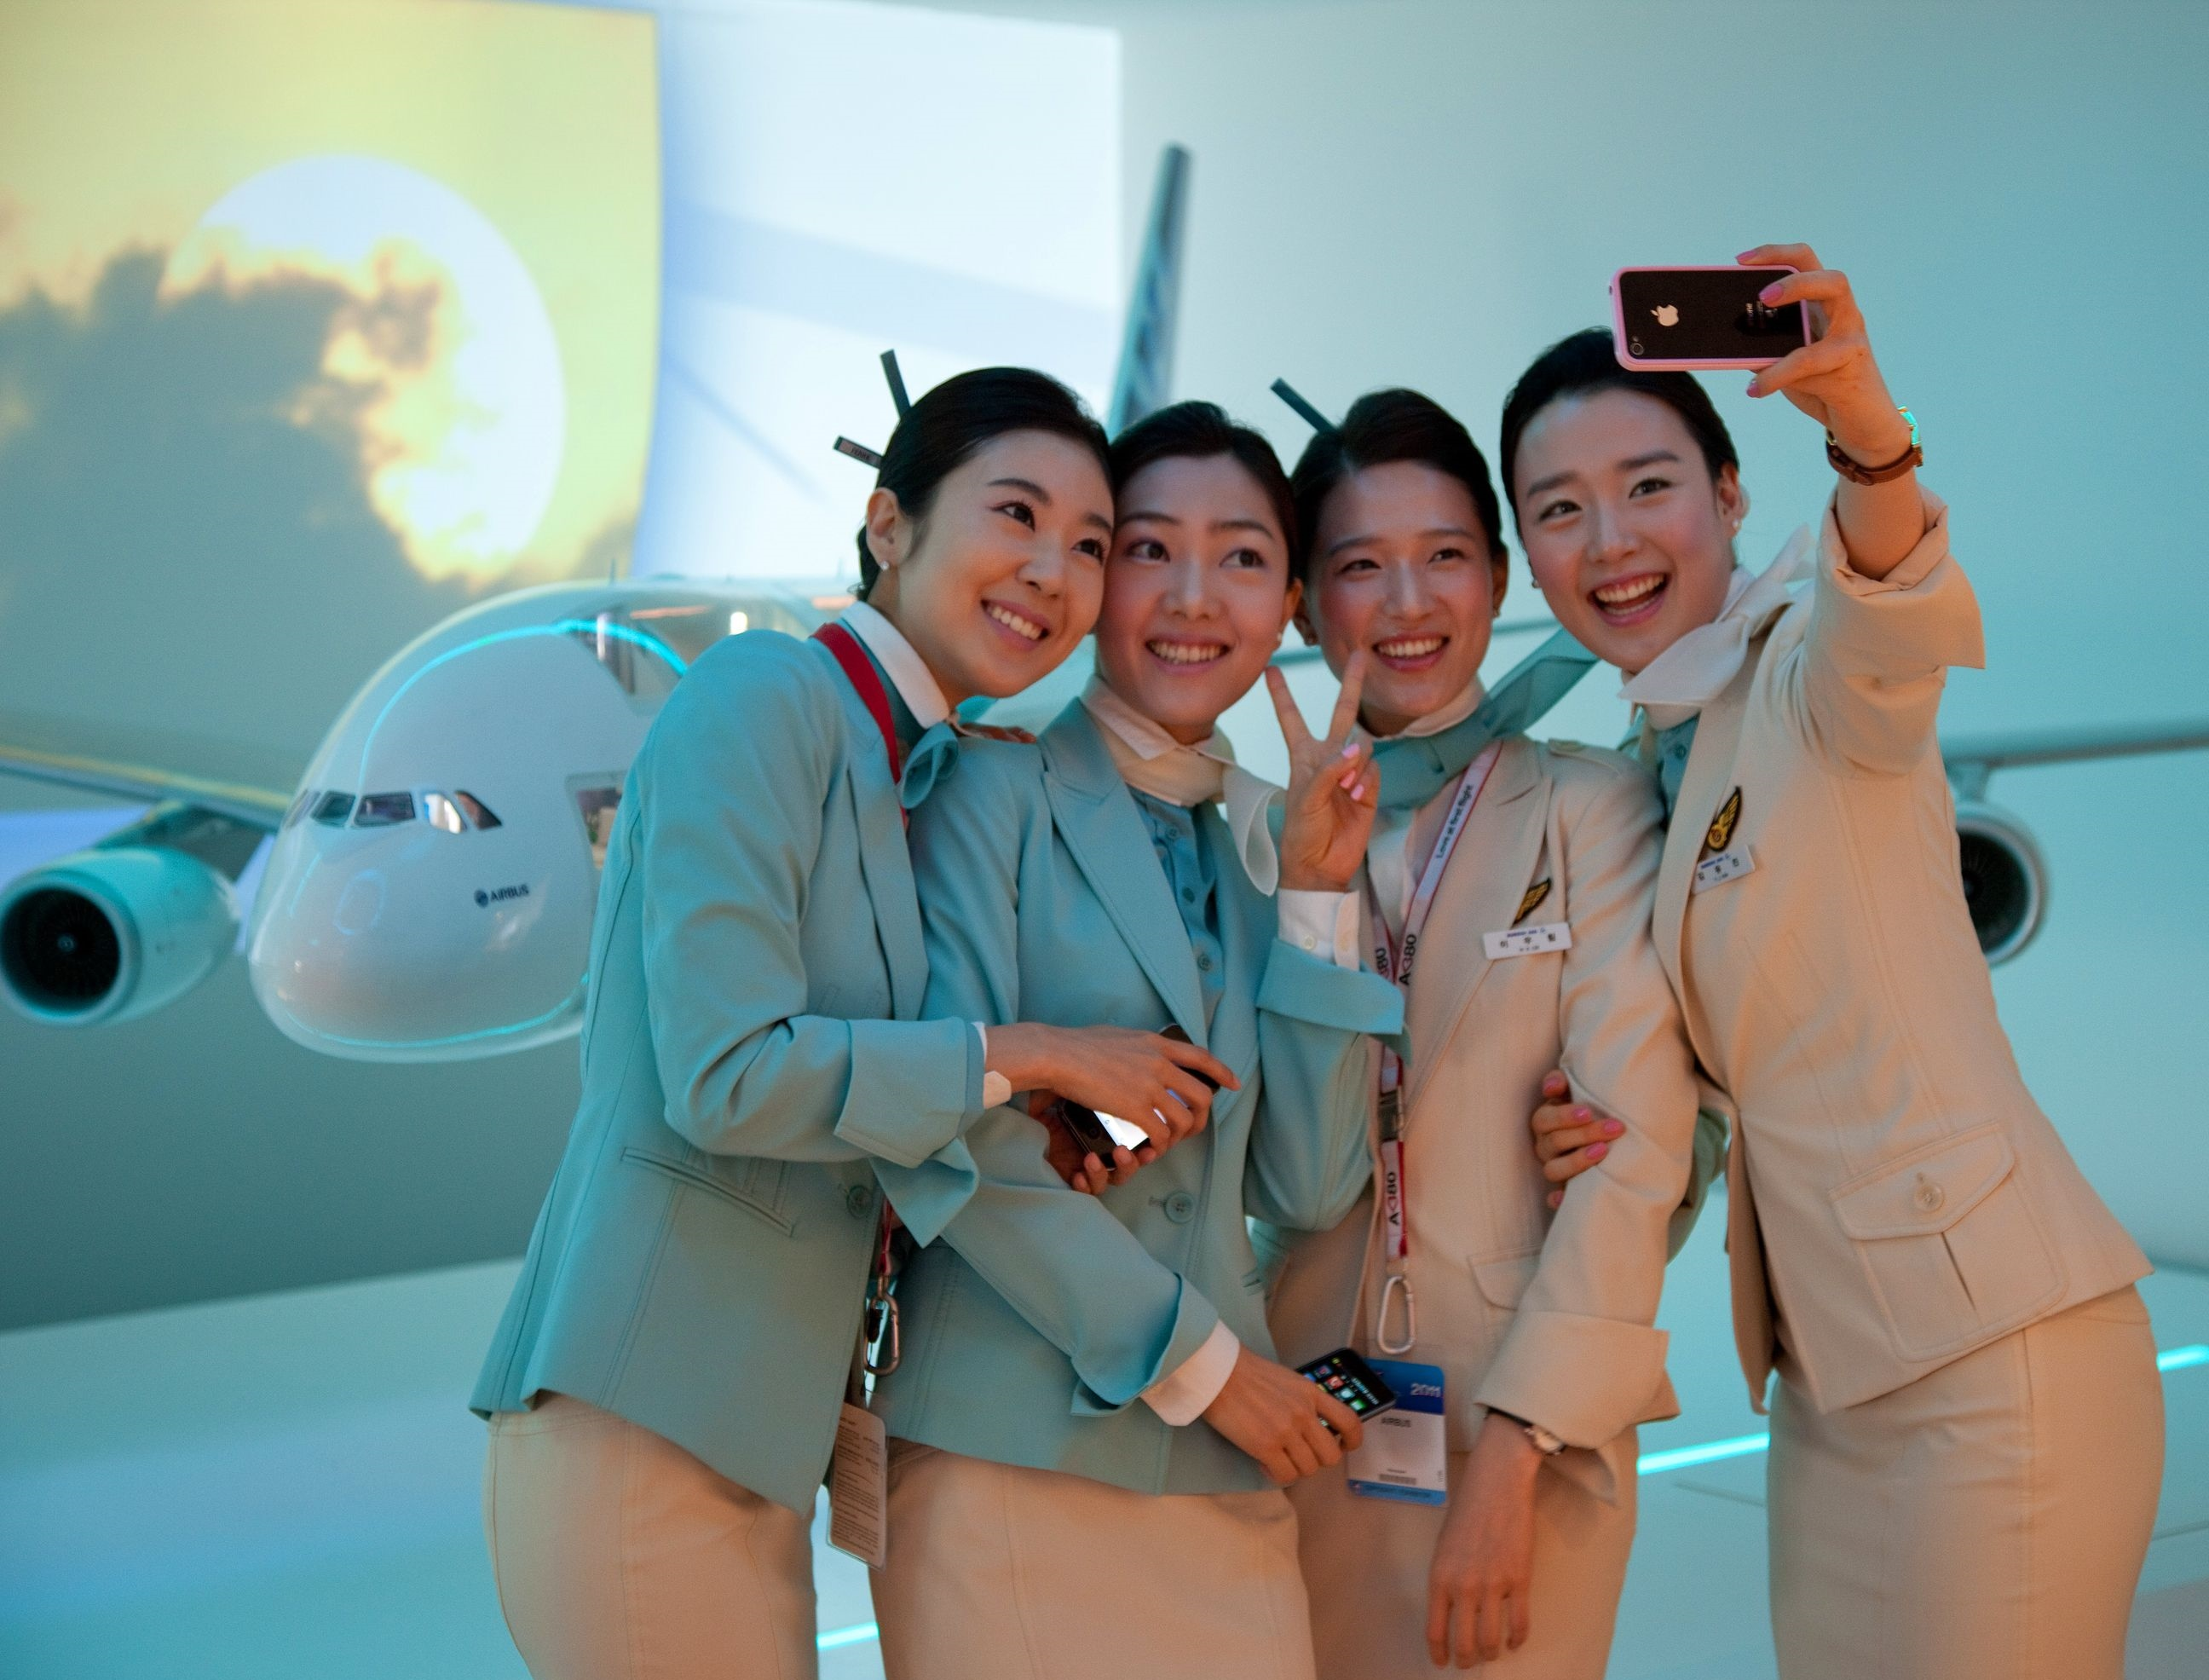 Uniformeret personale fra Korean Air under et airshow i Paris. Arkivfoto fra Airbus.